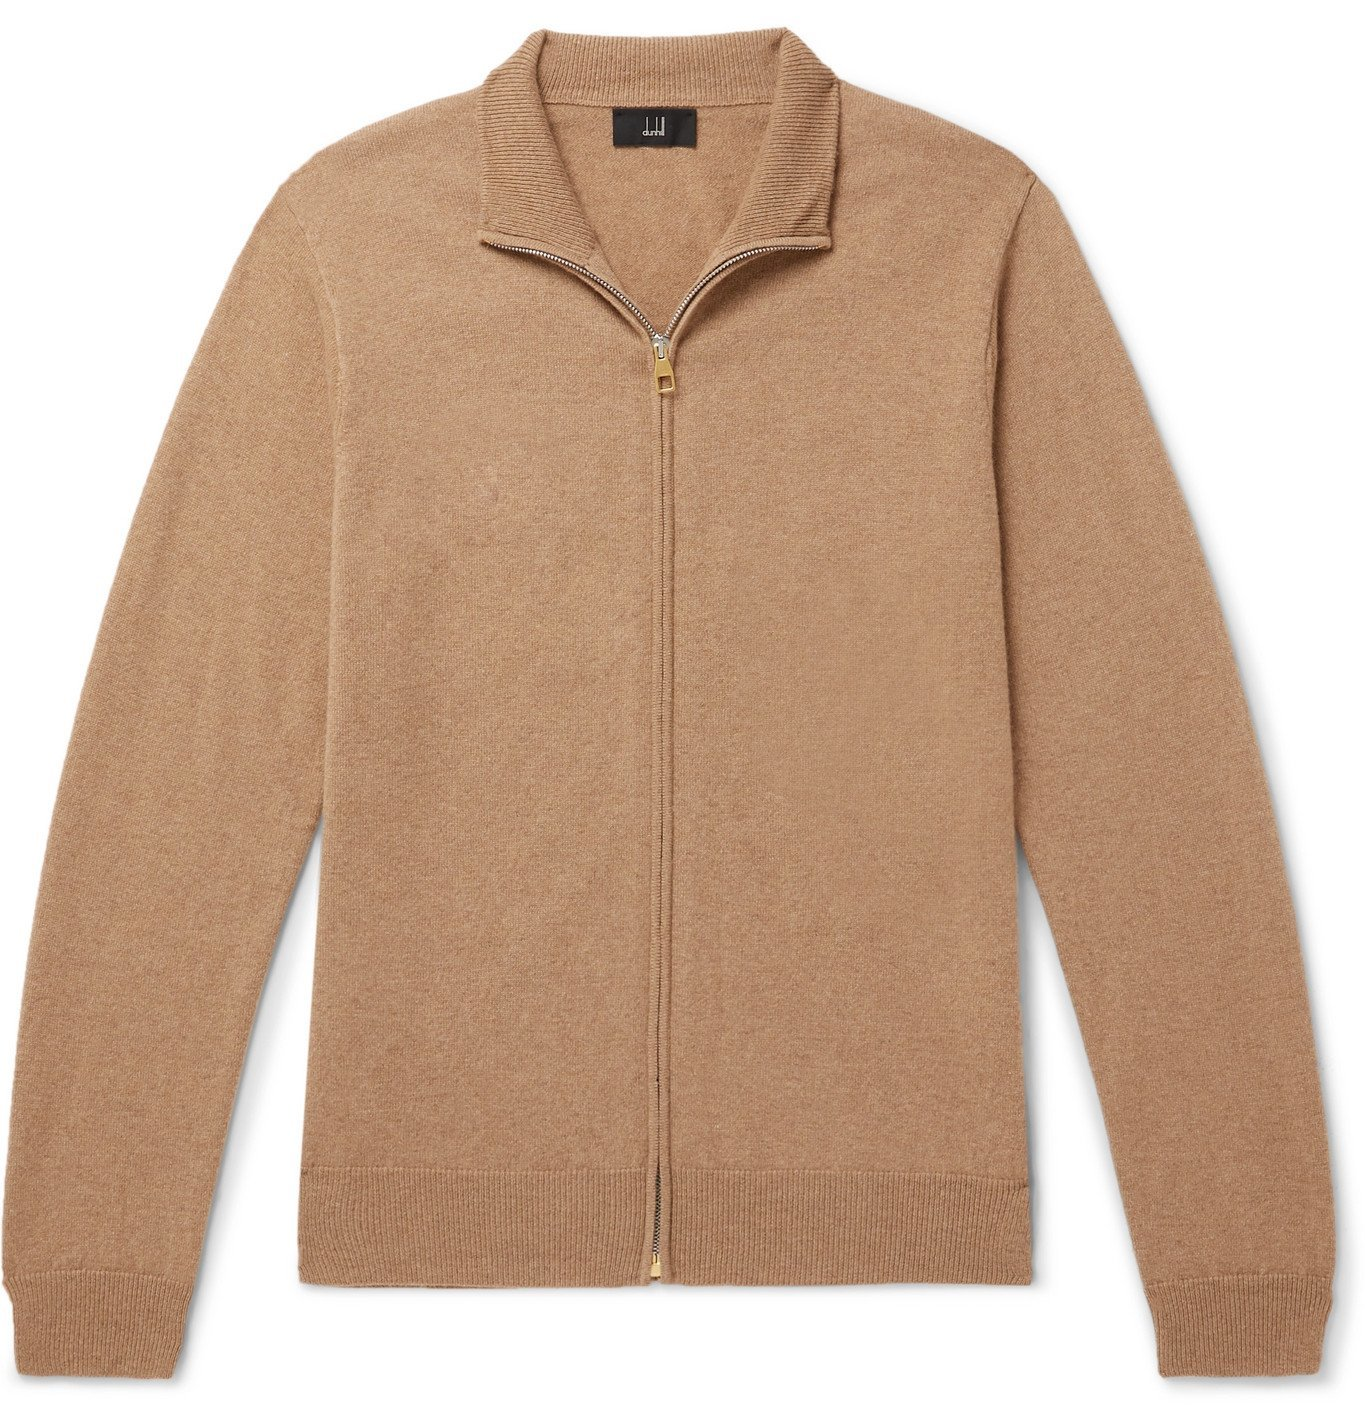 Dunhill - Cashmere Zip-Up Cardigan - Brown